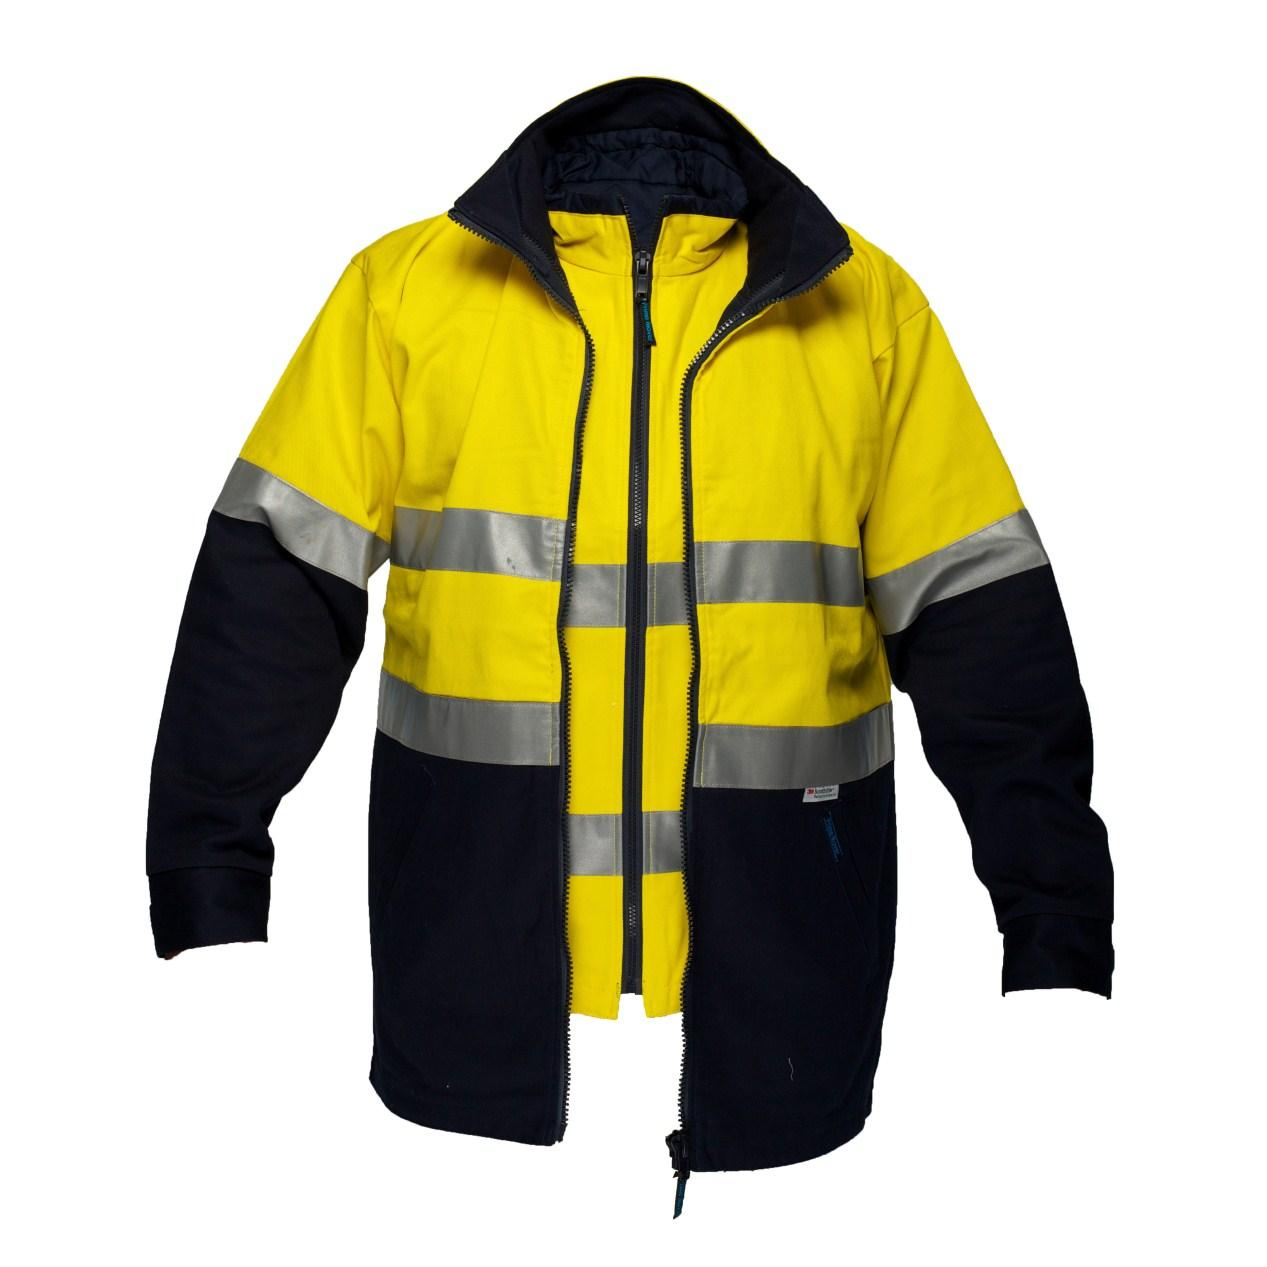 Safety Yellow Shirts >> 100% Cotton 4 -in-1 Safety Jacket Hi Vis Workwear- Safety Gear Express